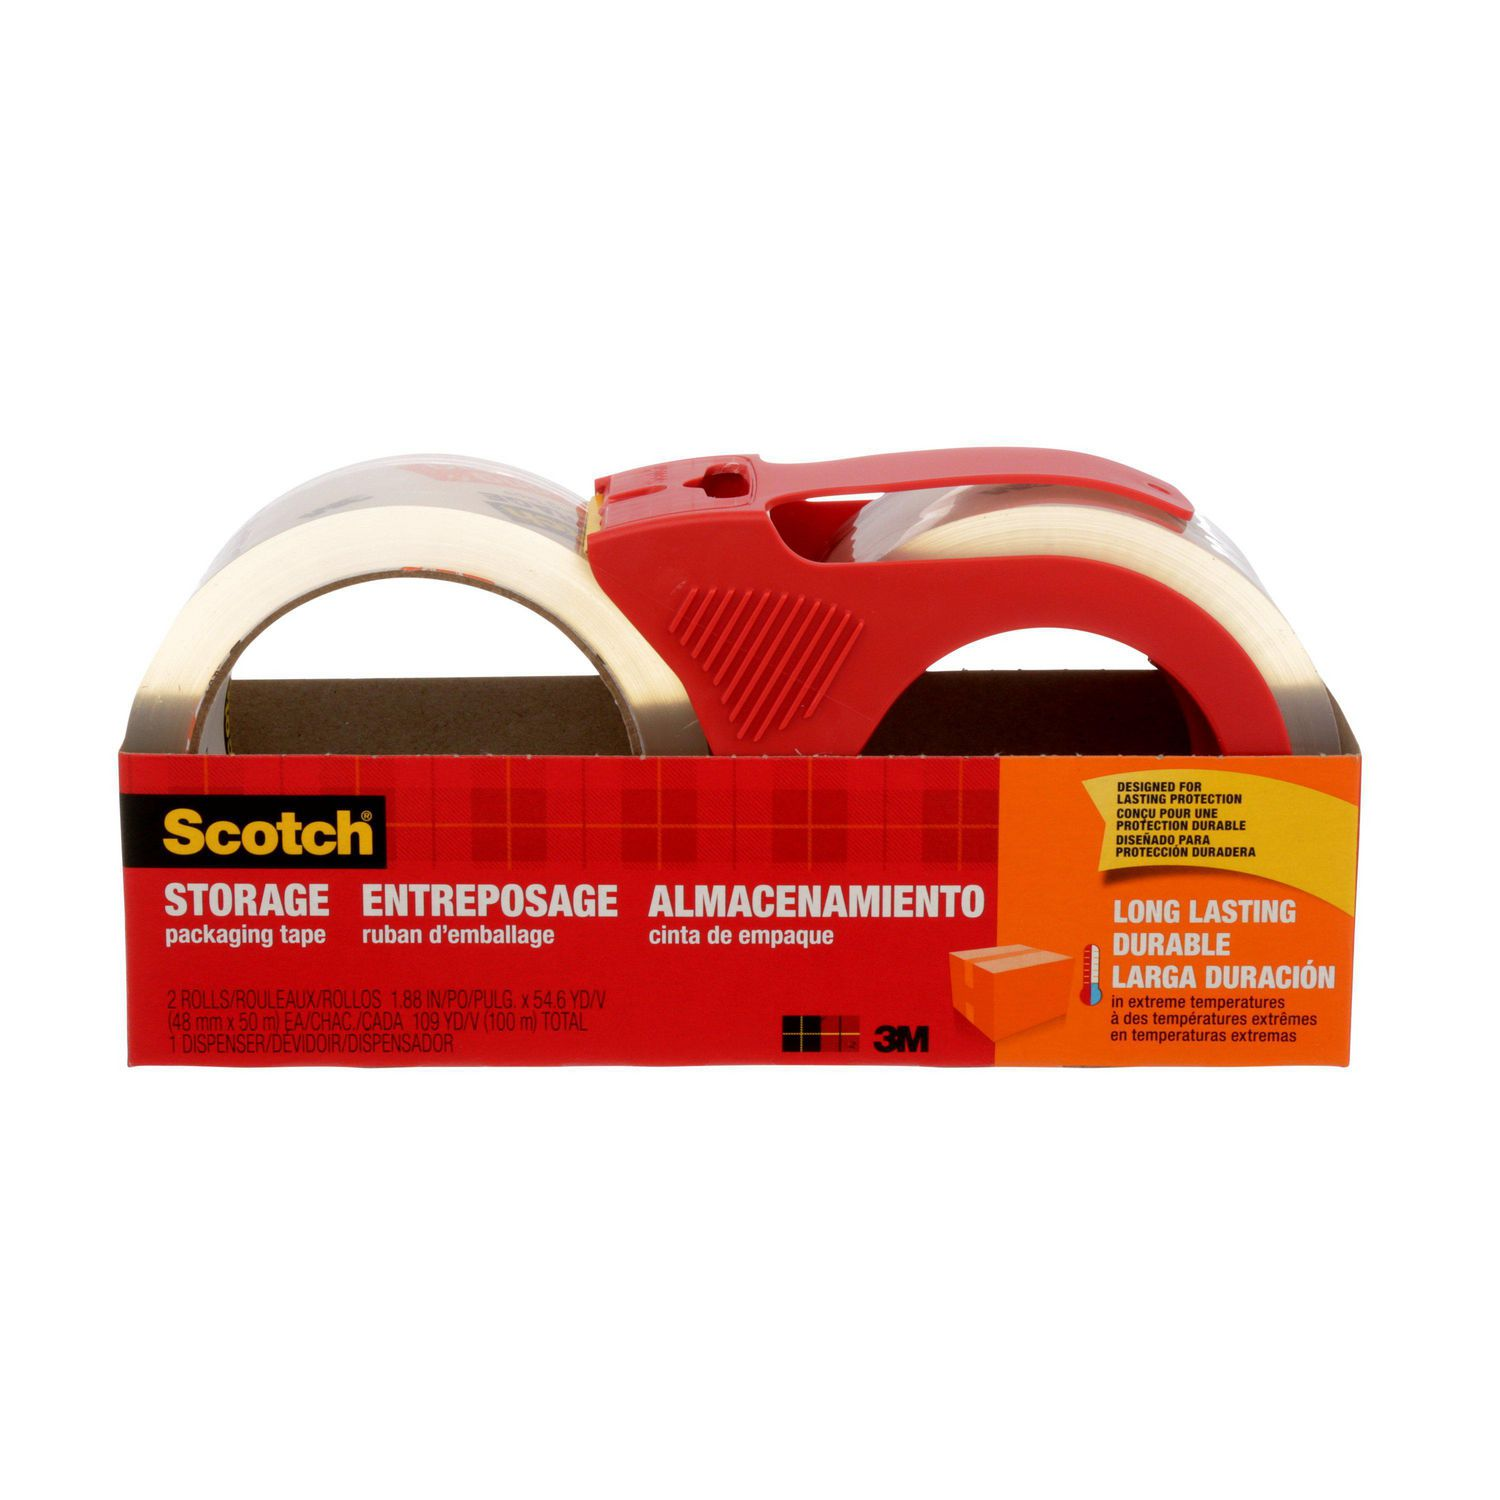 ScotchR 3650 2RD ESF Moving And Storage Packaging Tape